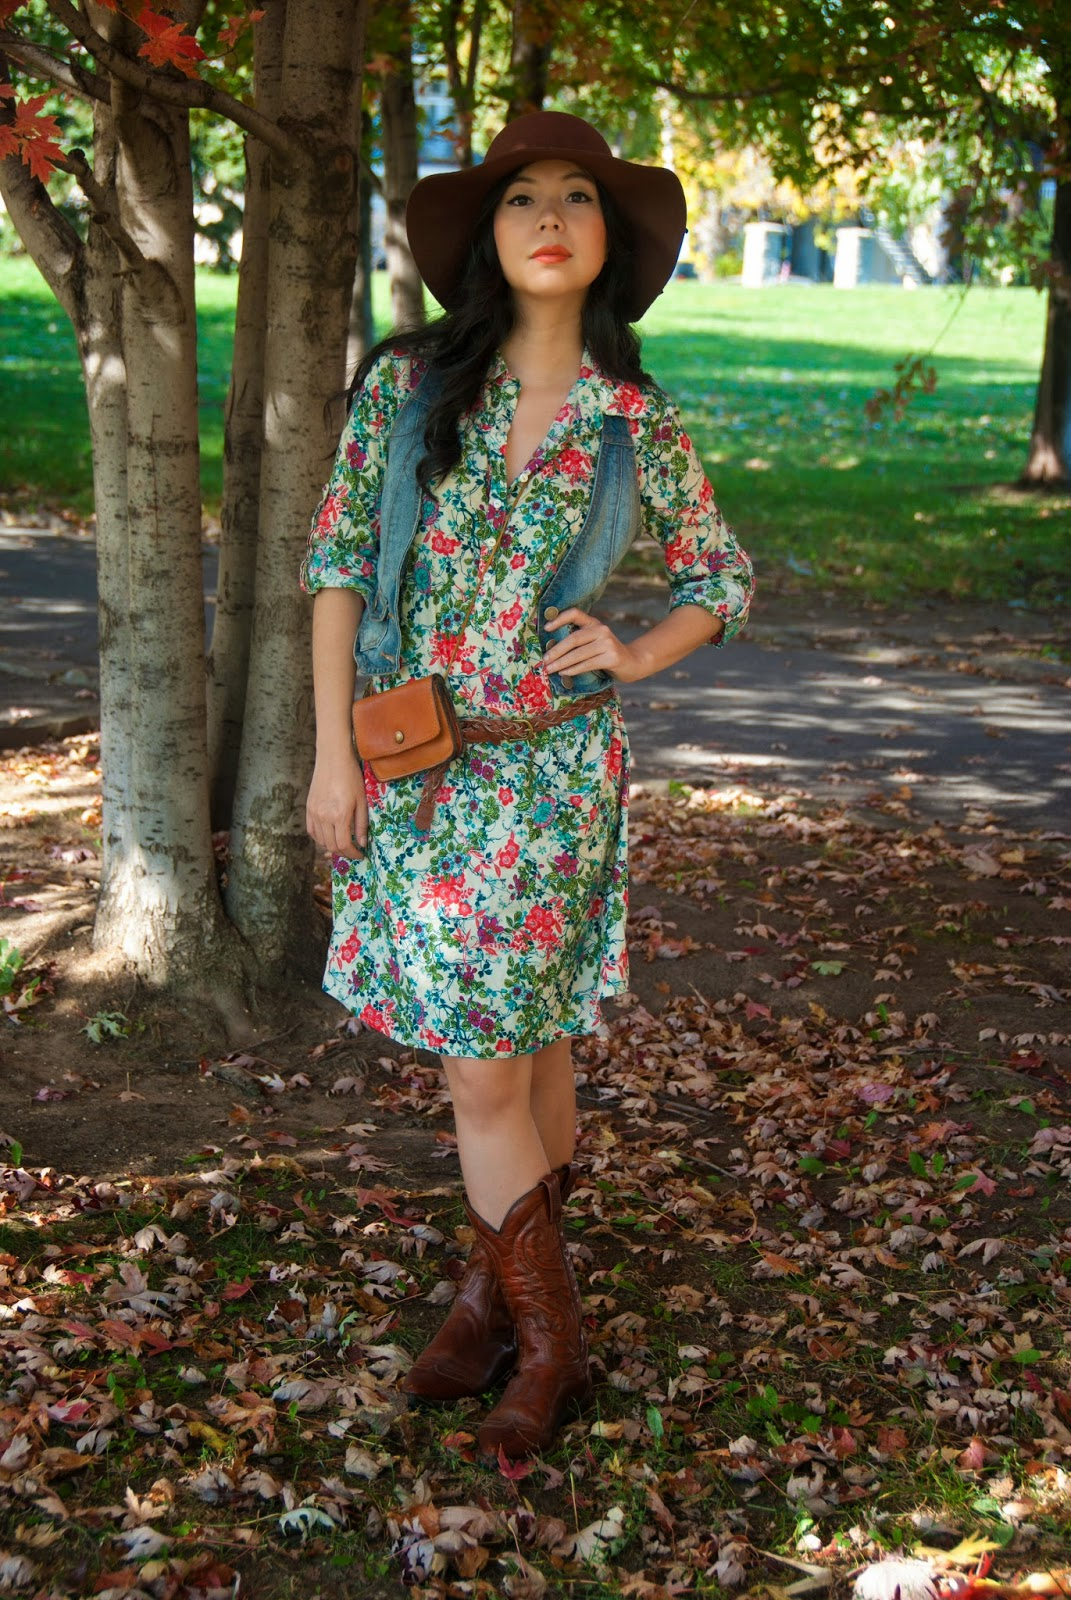 cowboy boots floral shirtdress braided belt leather purse floppy brown hat denim jean vest fall leaves